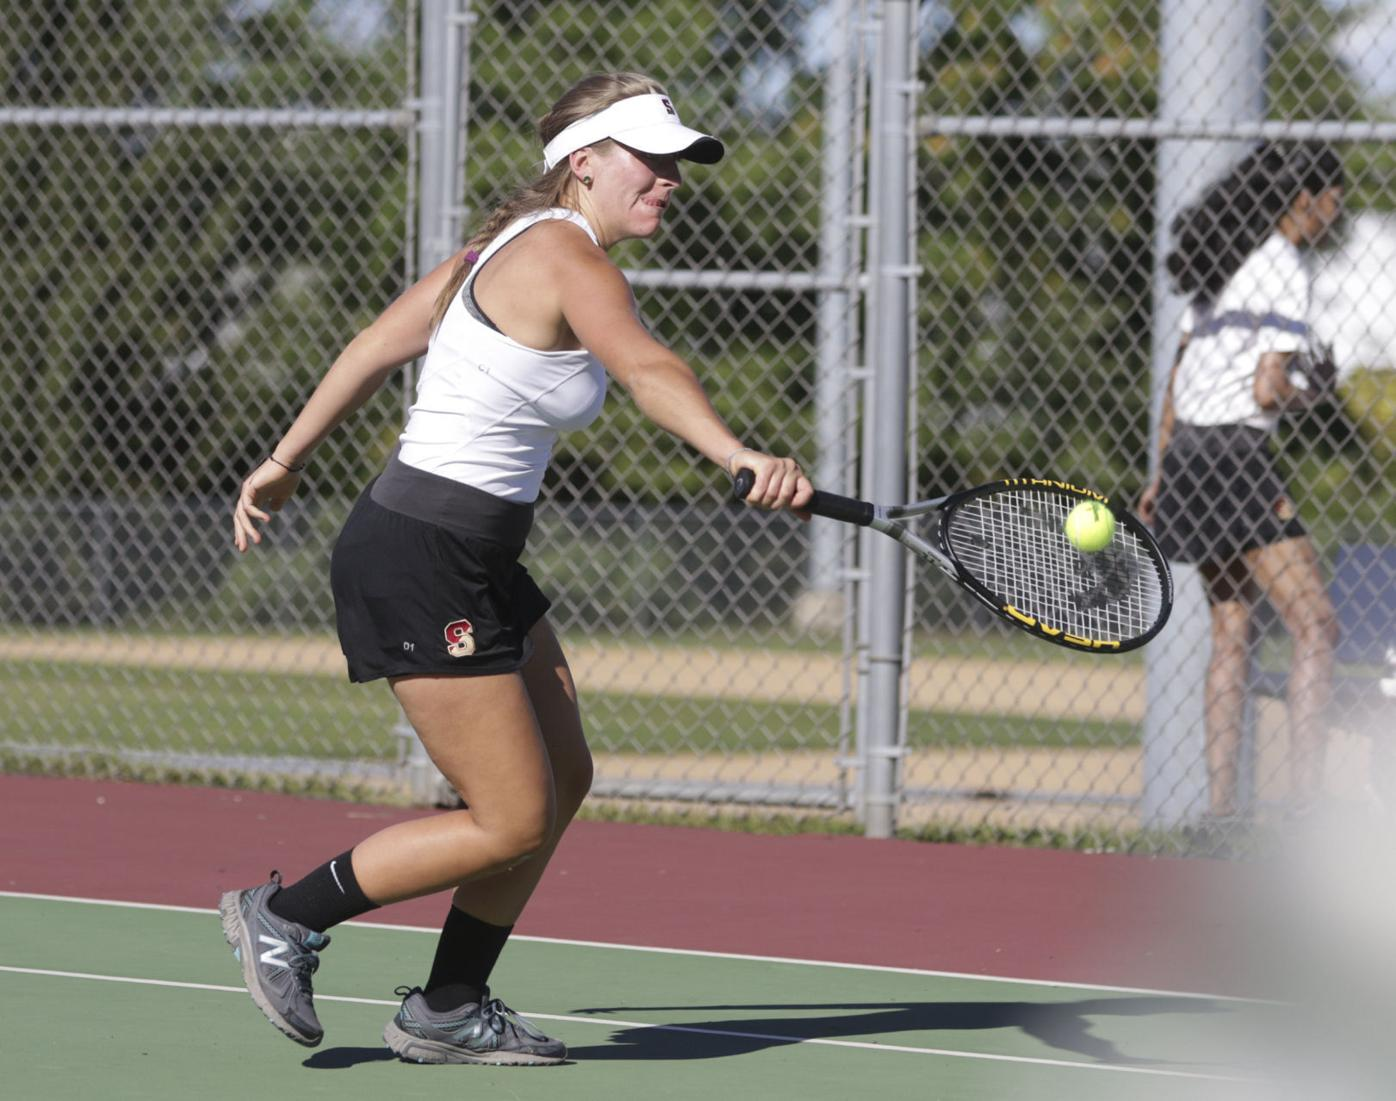 Scranton's Theresa Huffman carries on family tennis tradition